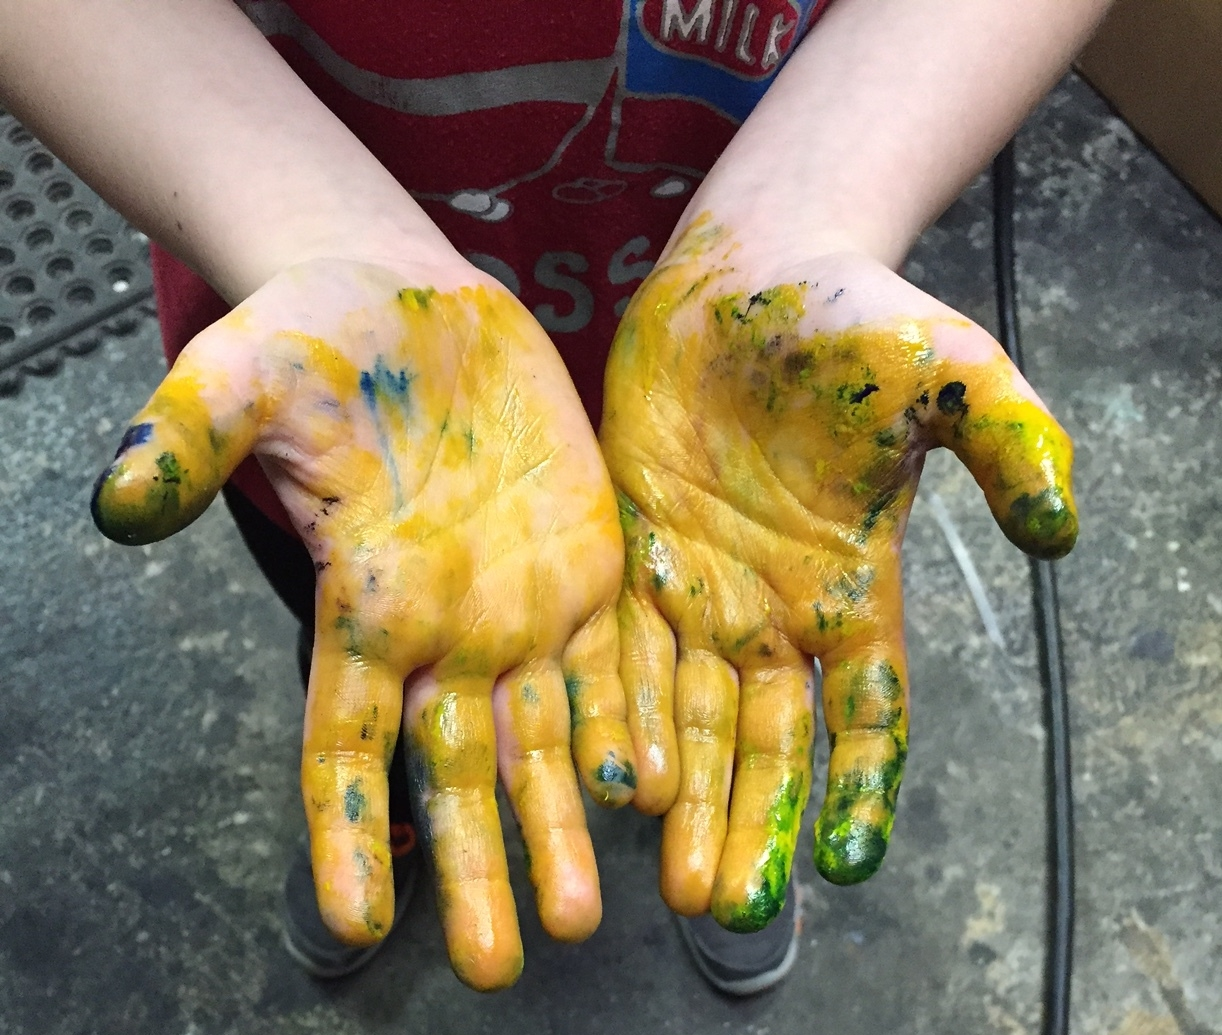 paint-in-hands-the-printing-post.jpg